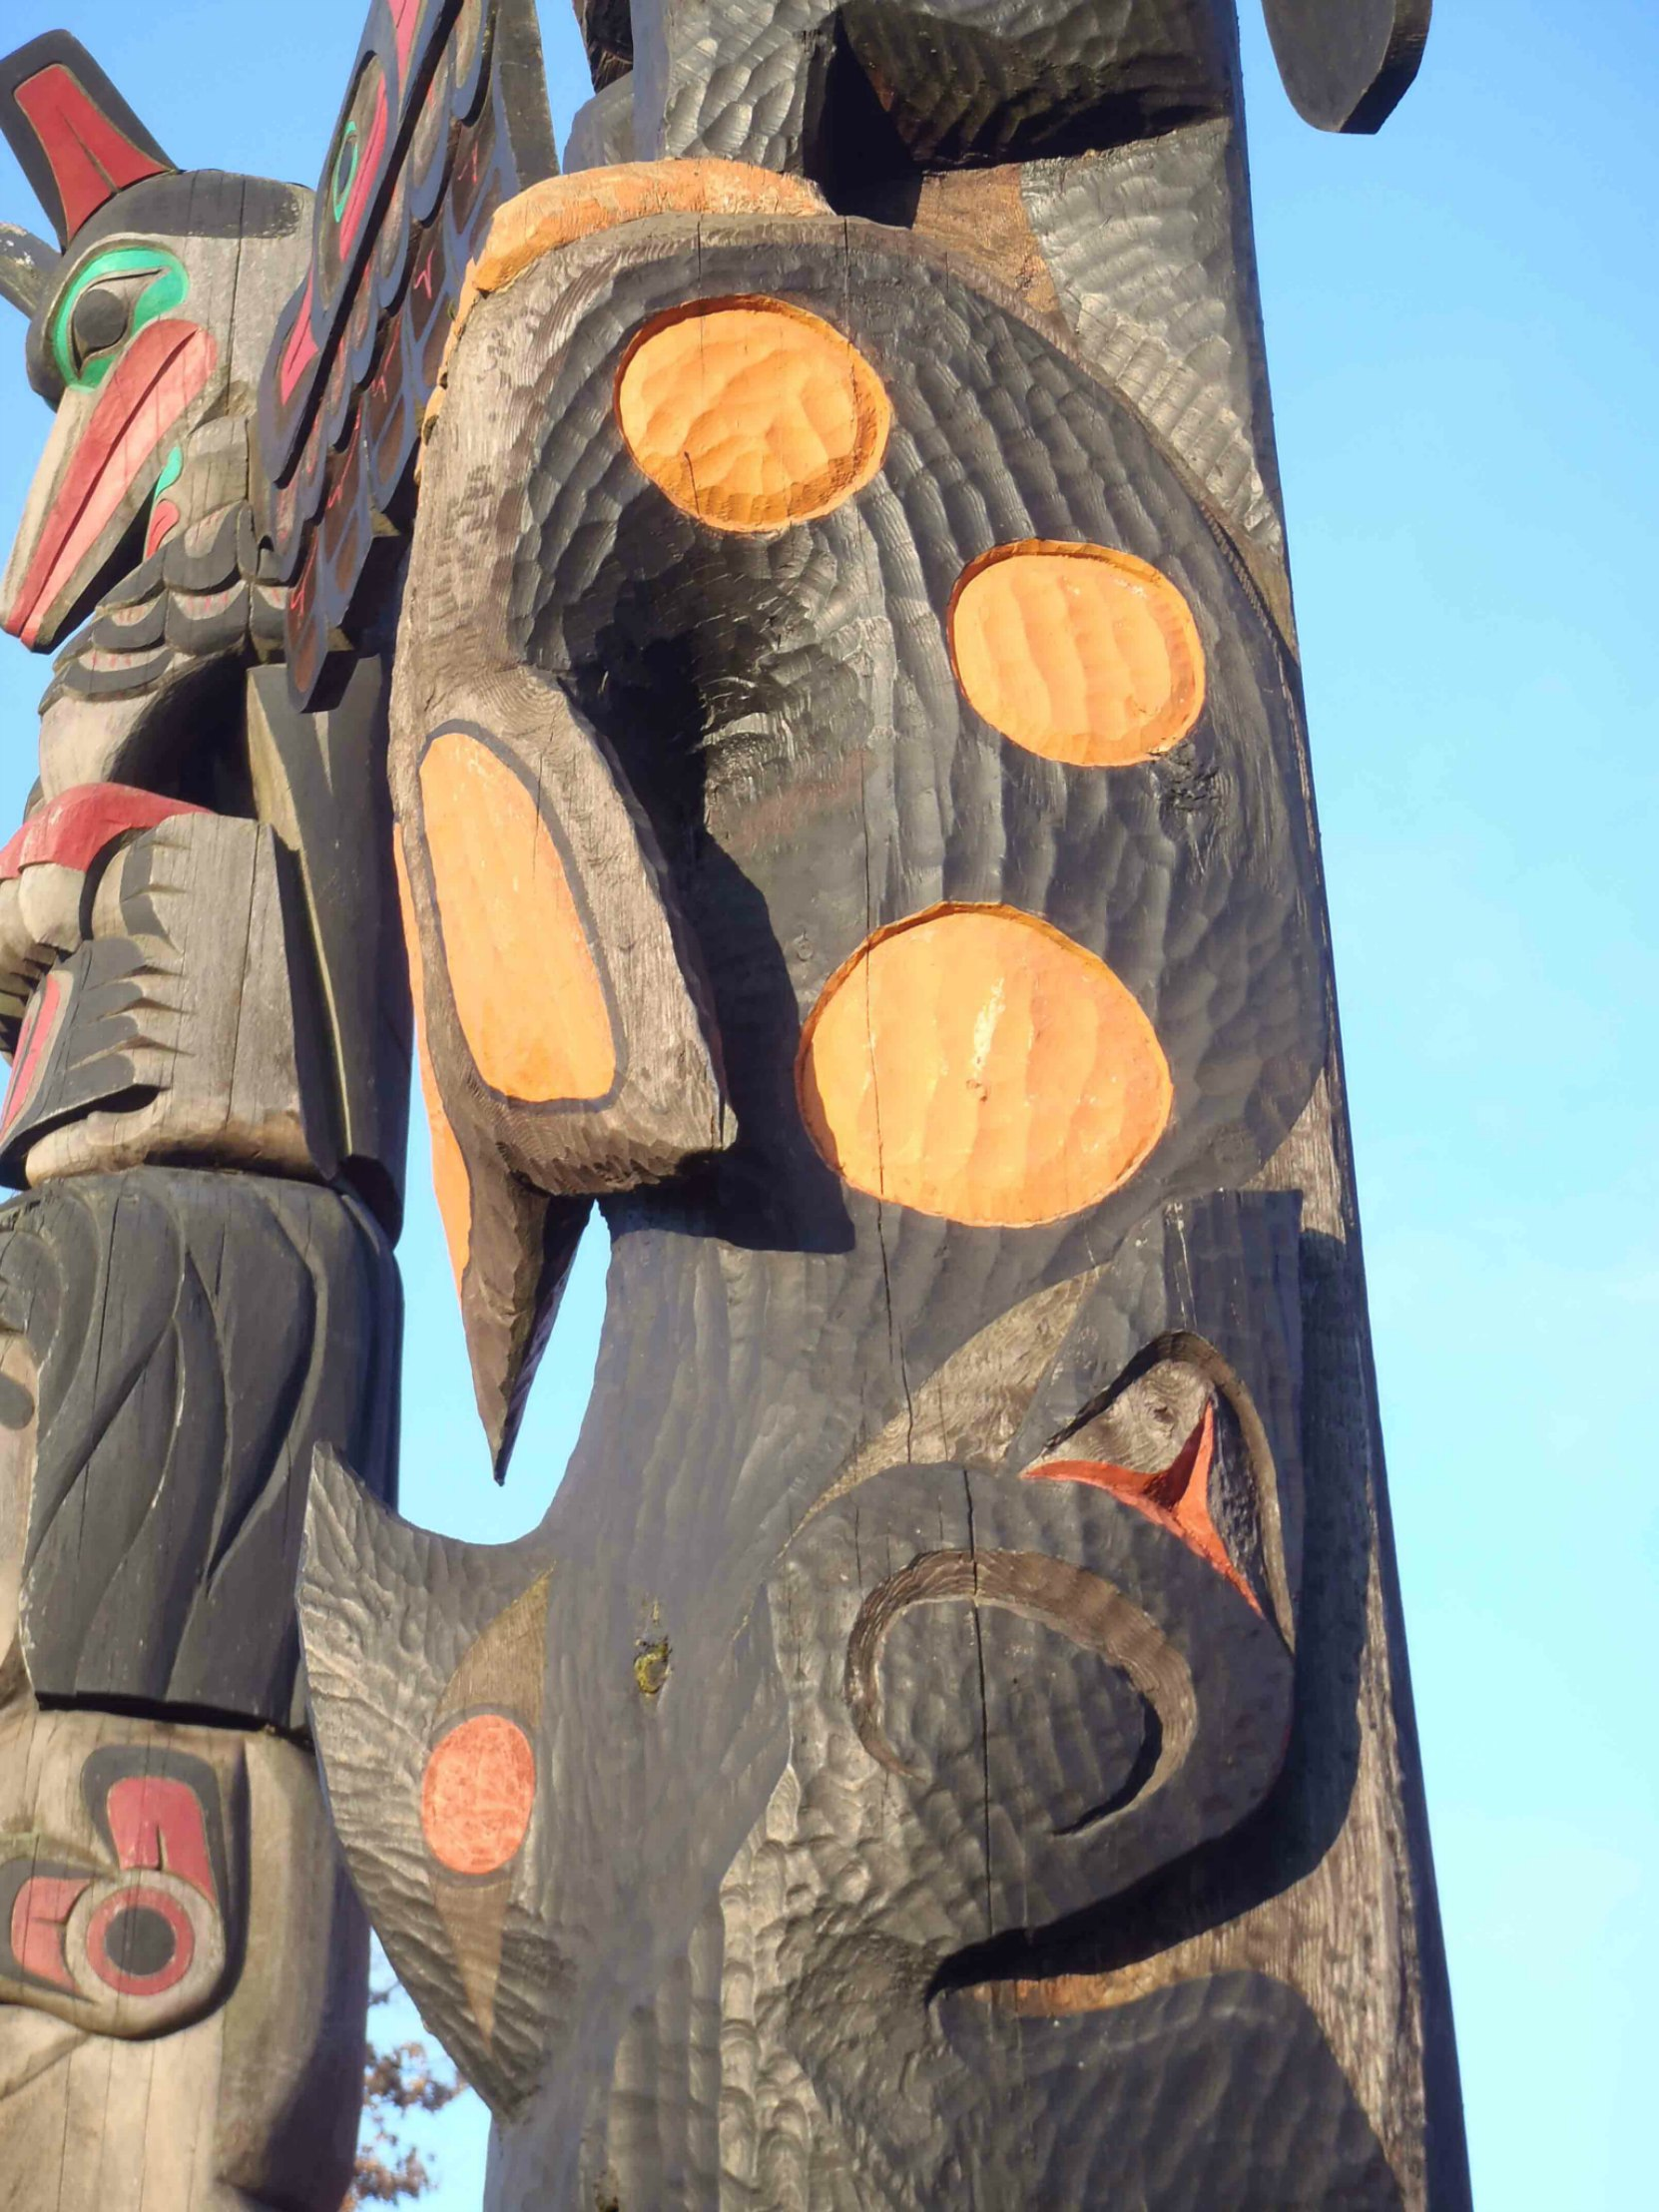 Pole of Wealth, Killer Whale figure detail. Canada Avenue at Kenneth Street